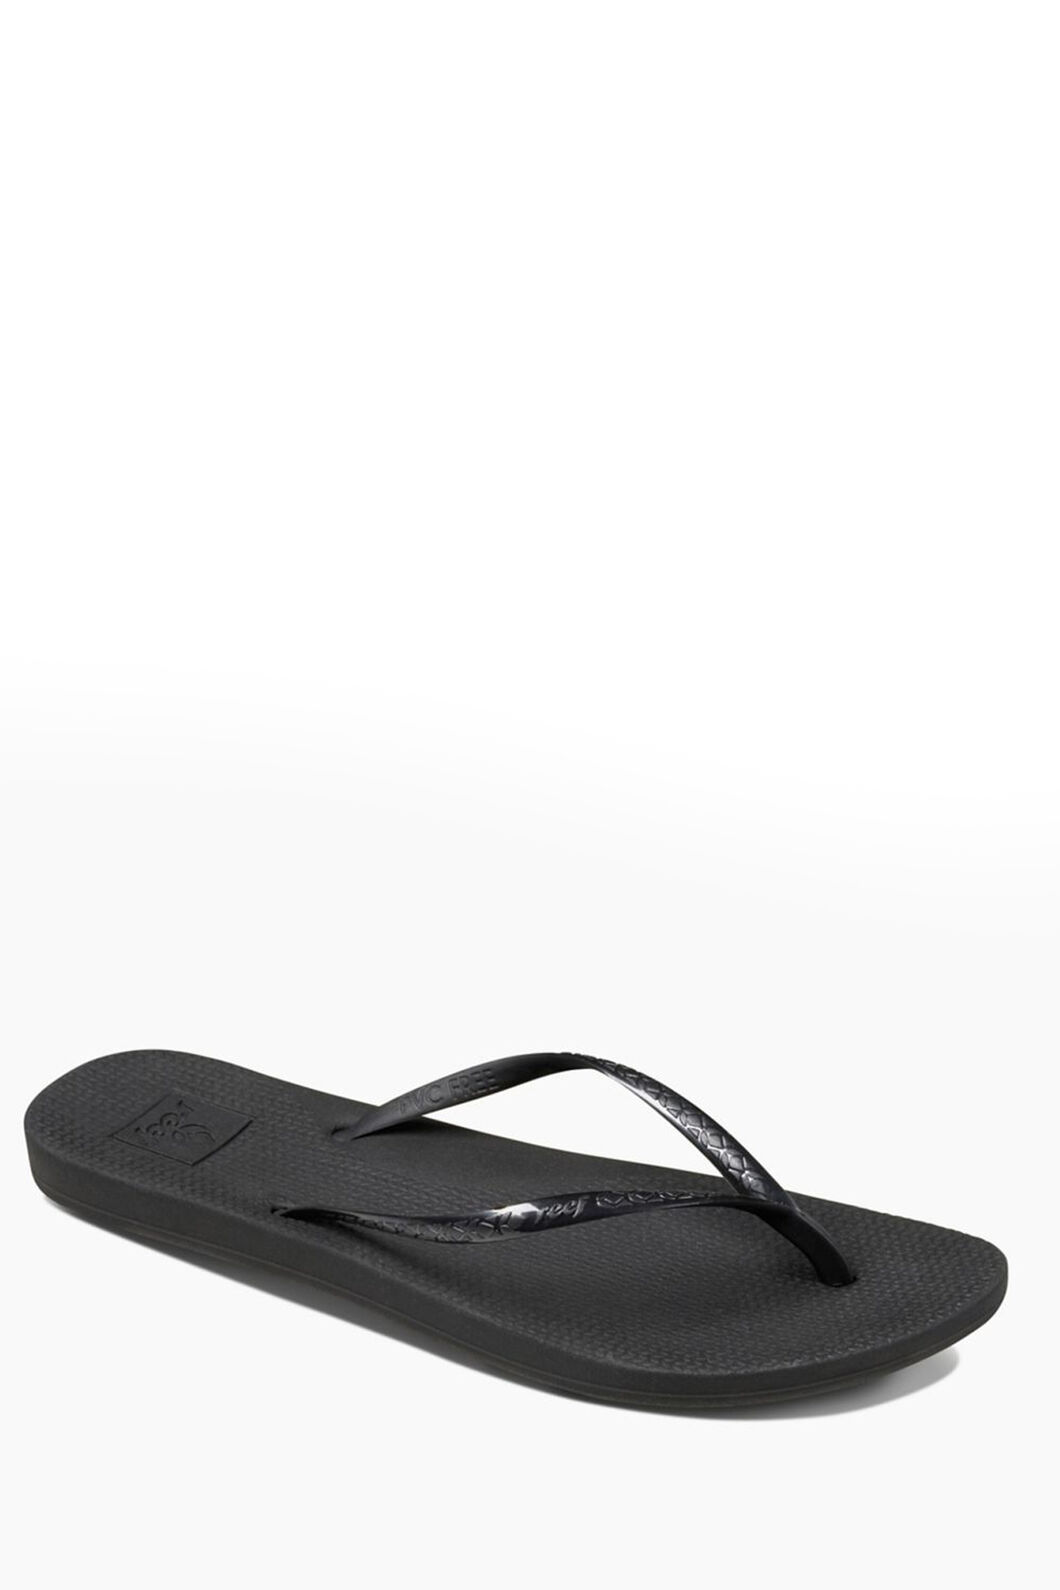 Reef Escape Lux Sandals — Women's, Black, hi-res